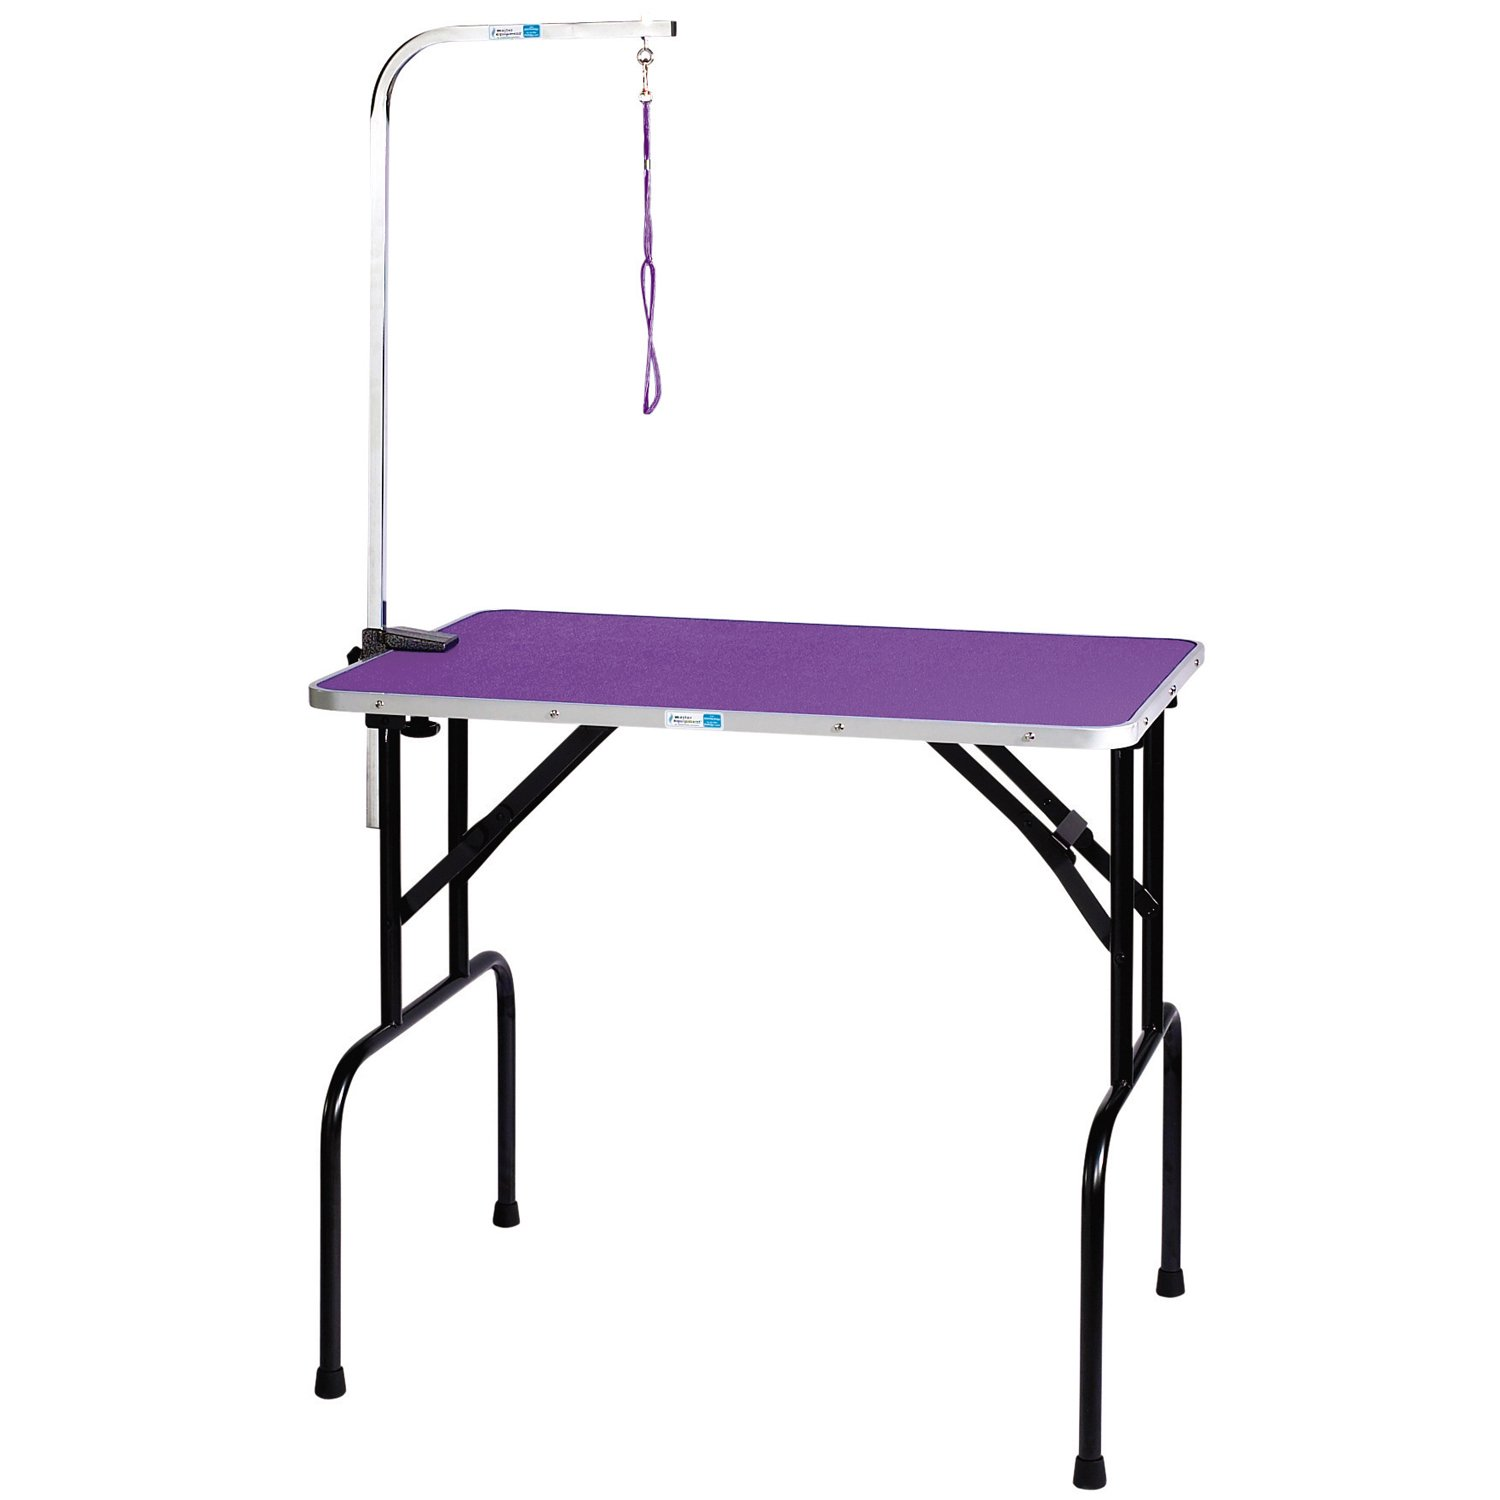 Purple 91.44 cmMaster Equipment Foldable, Portable Pet Grooming Table